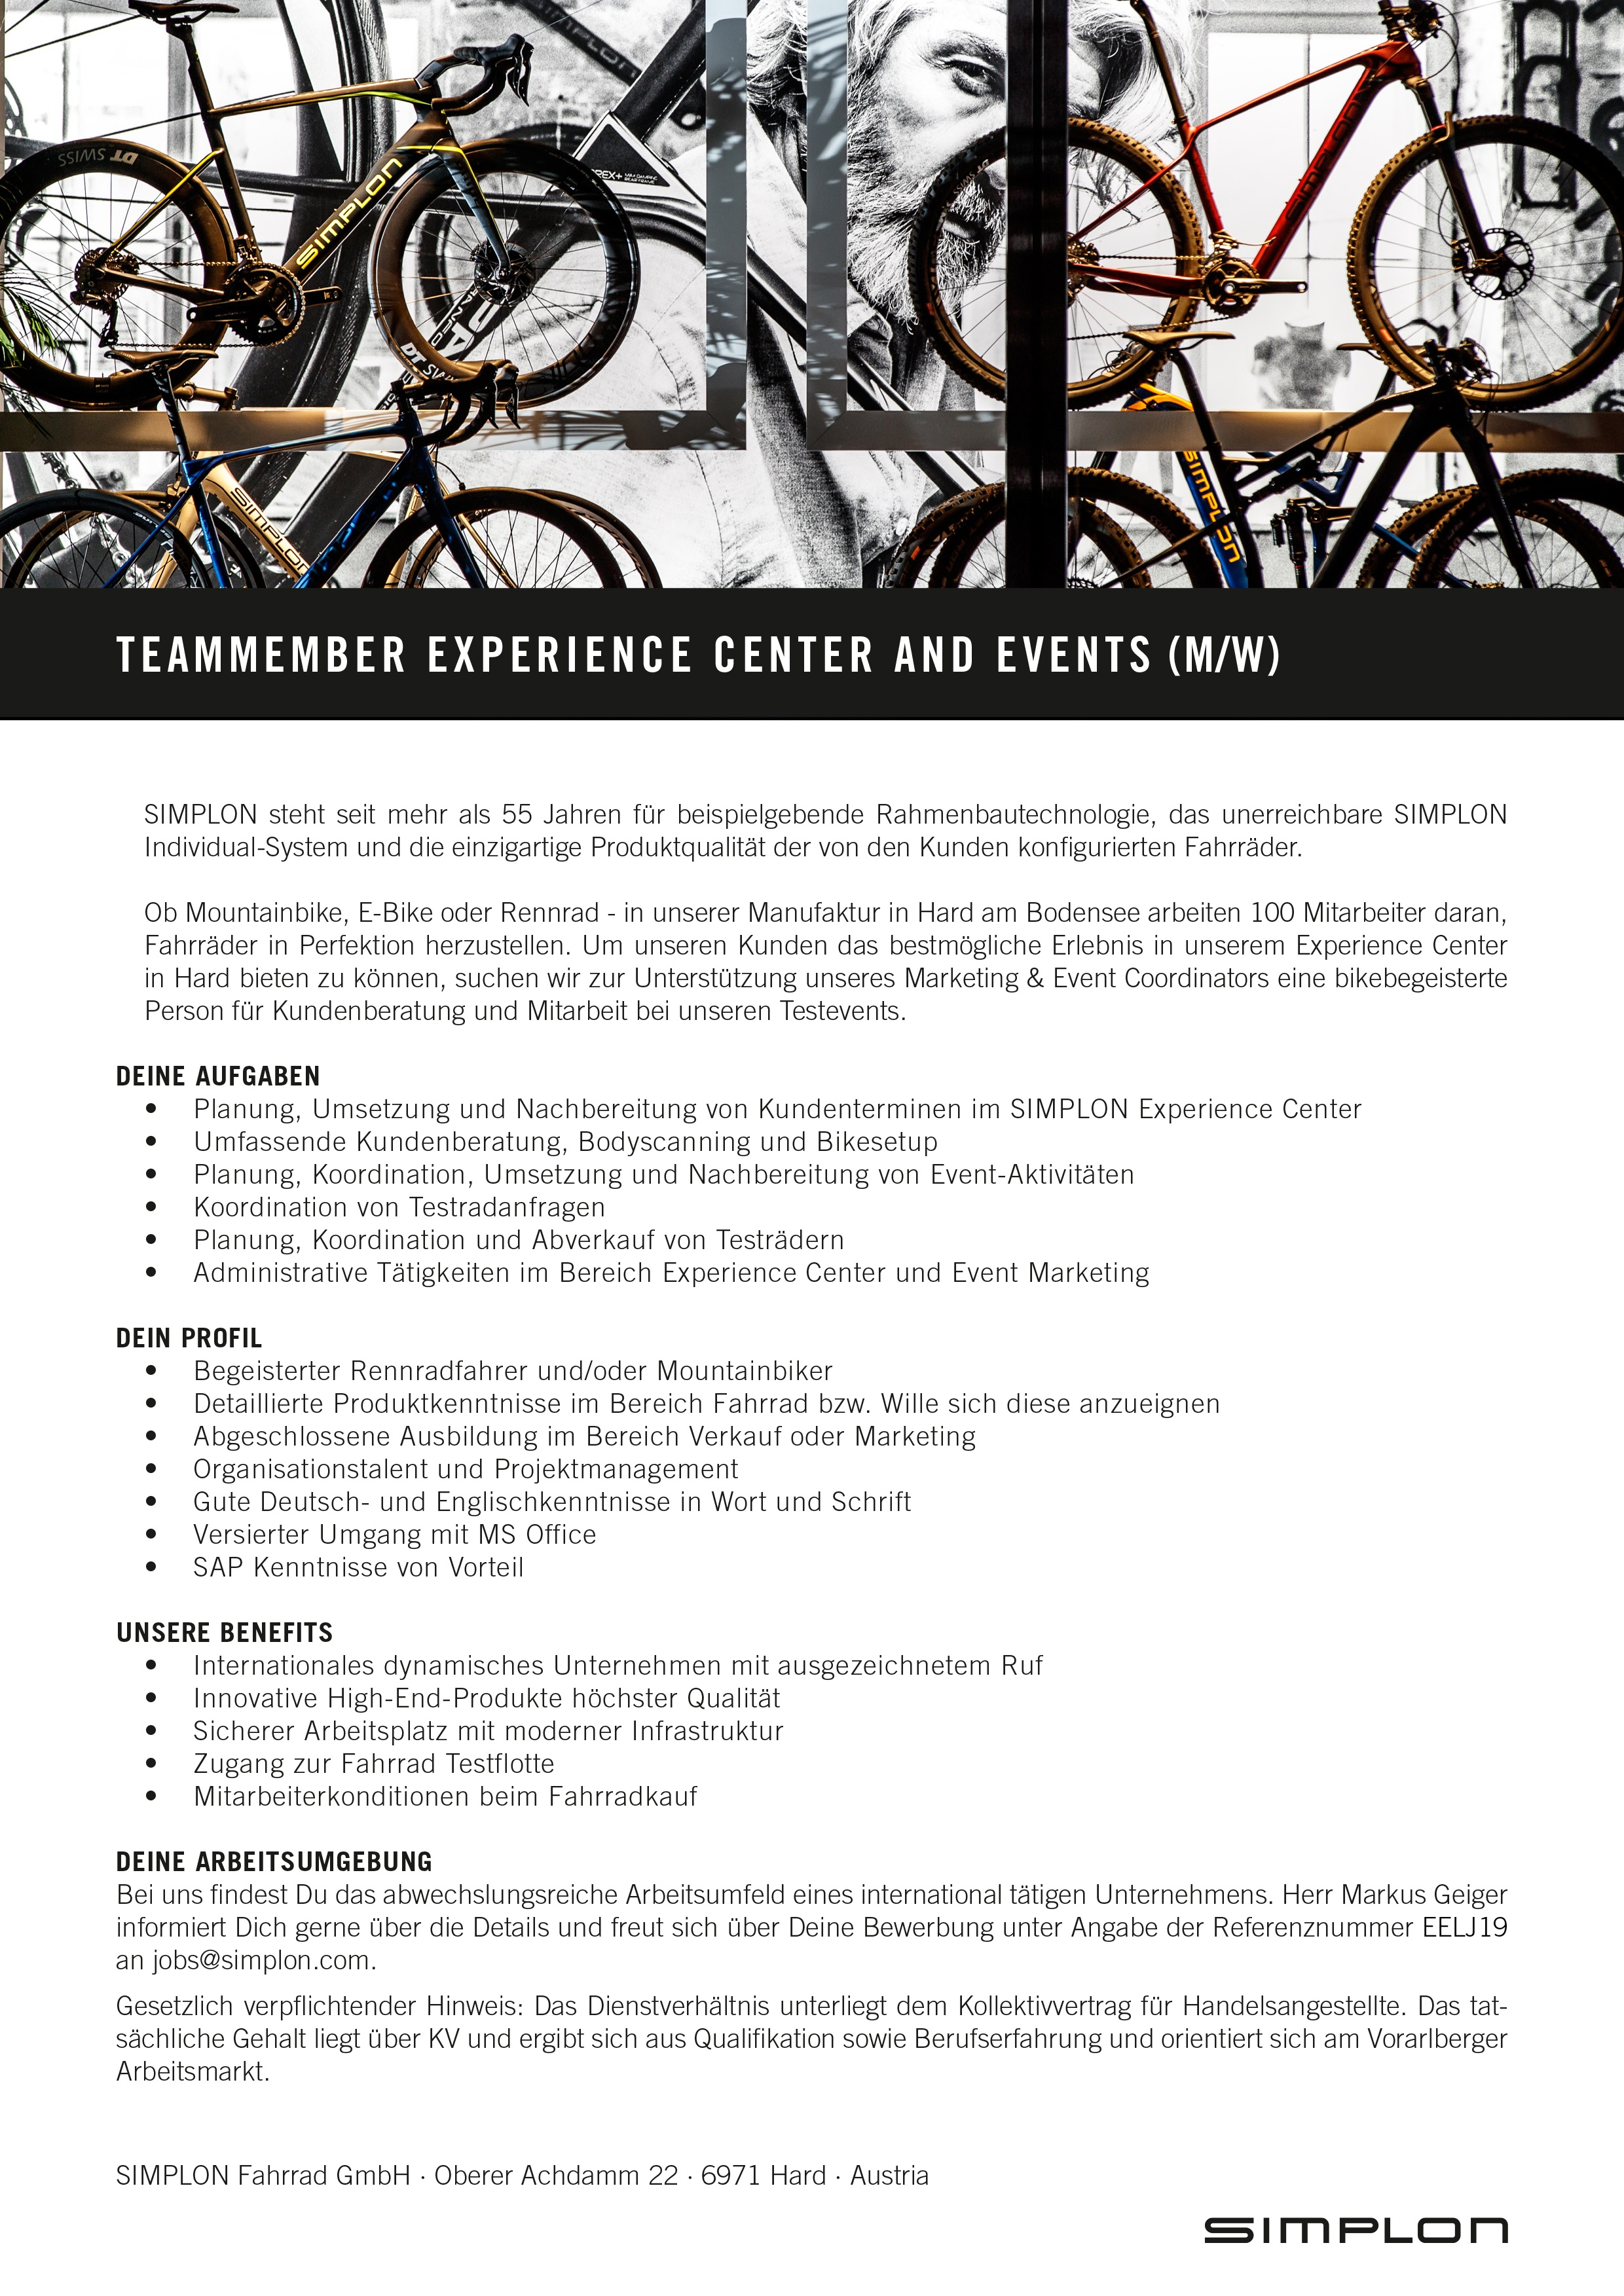 Teammember (m/w) Experience Center and Events